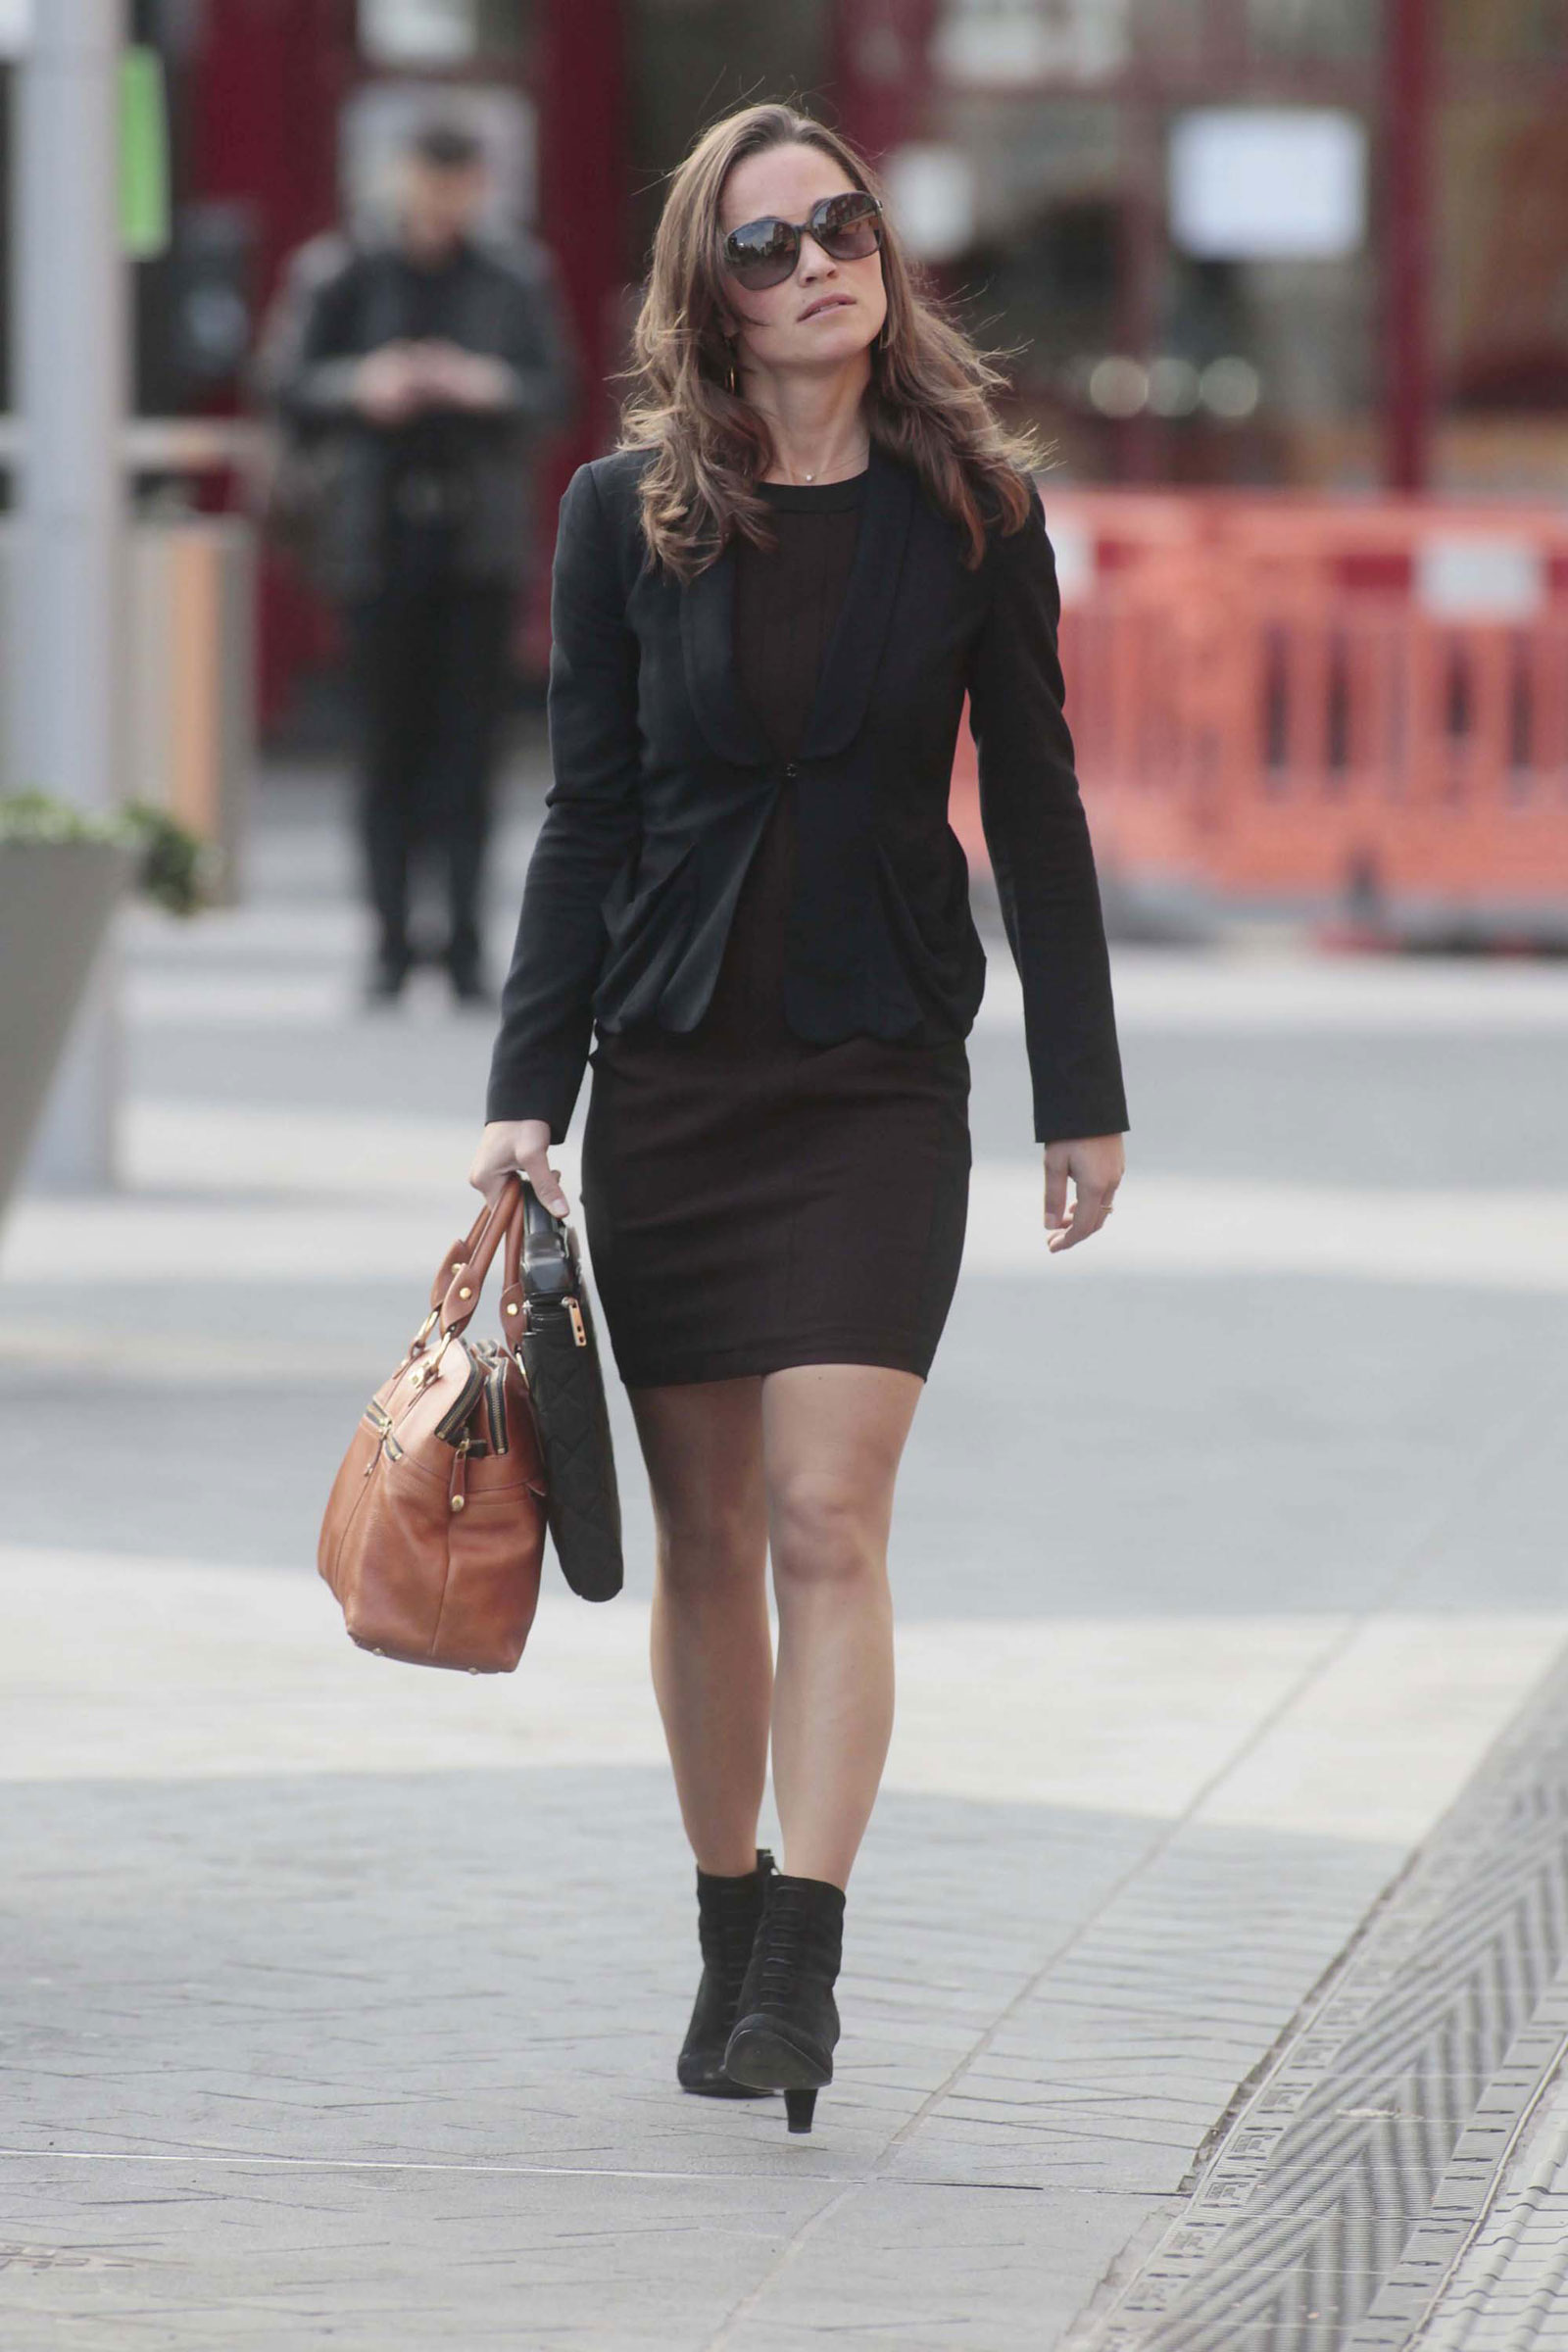 pippa middleton walking to her work in chelsea london pippa middleton leggy candids in chelsea london